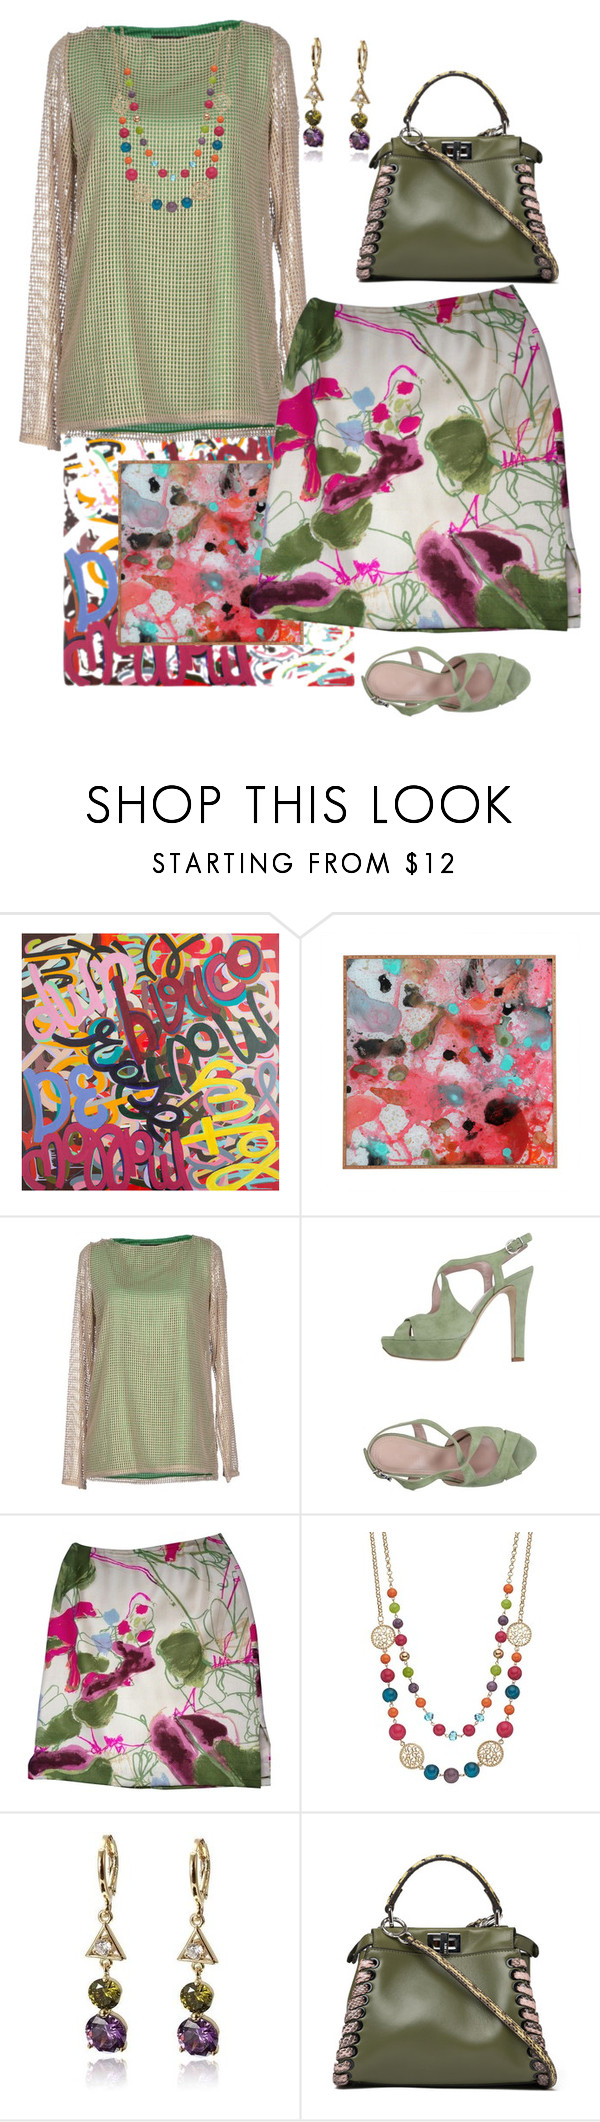 """""""Color Splash"""" by easy-dressing ❤ liked on Polyvore featuring Jo No Fui, Altiebassi, Christian Lacroix and Fendi"""